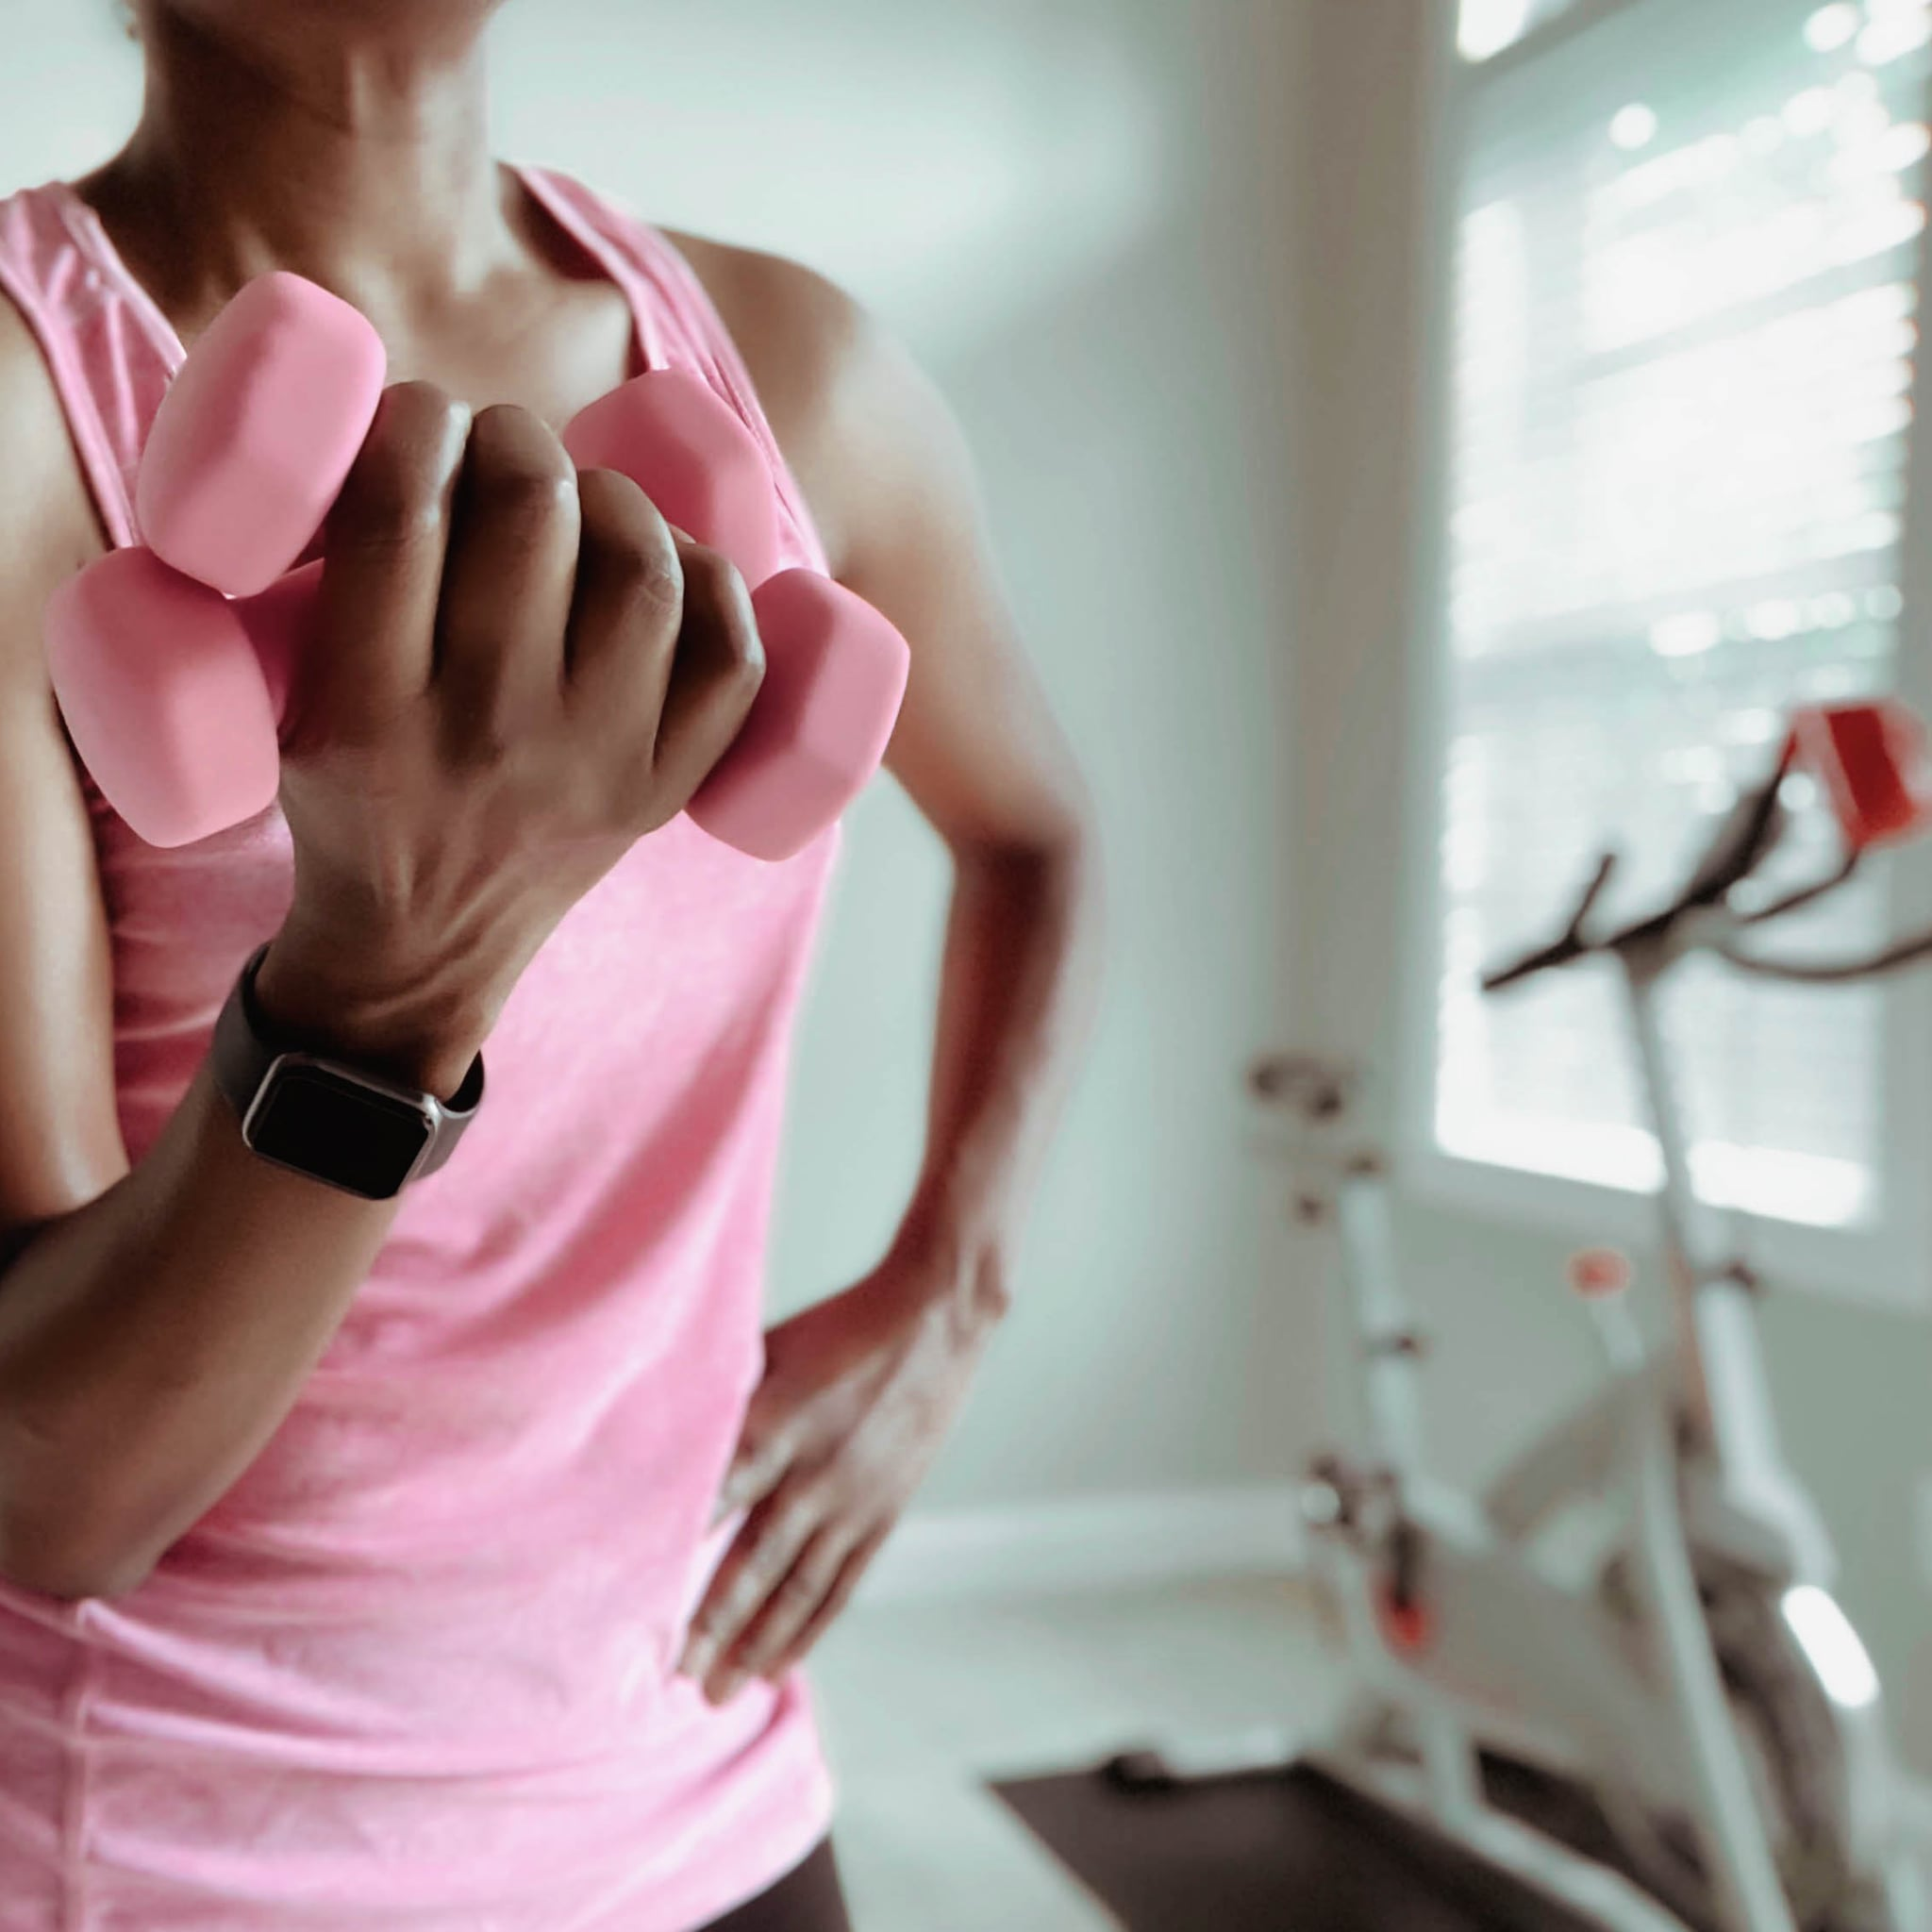 4-Move Arm Circuit For the End of a Cycling Workout